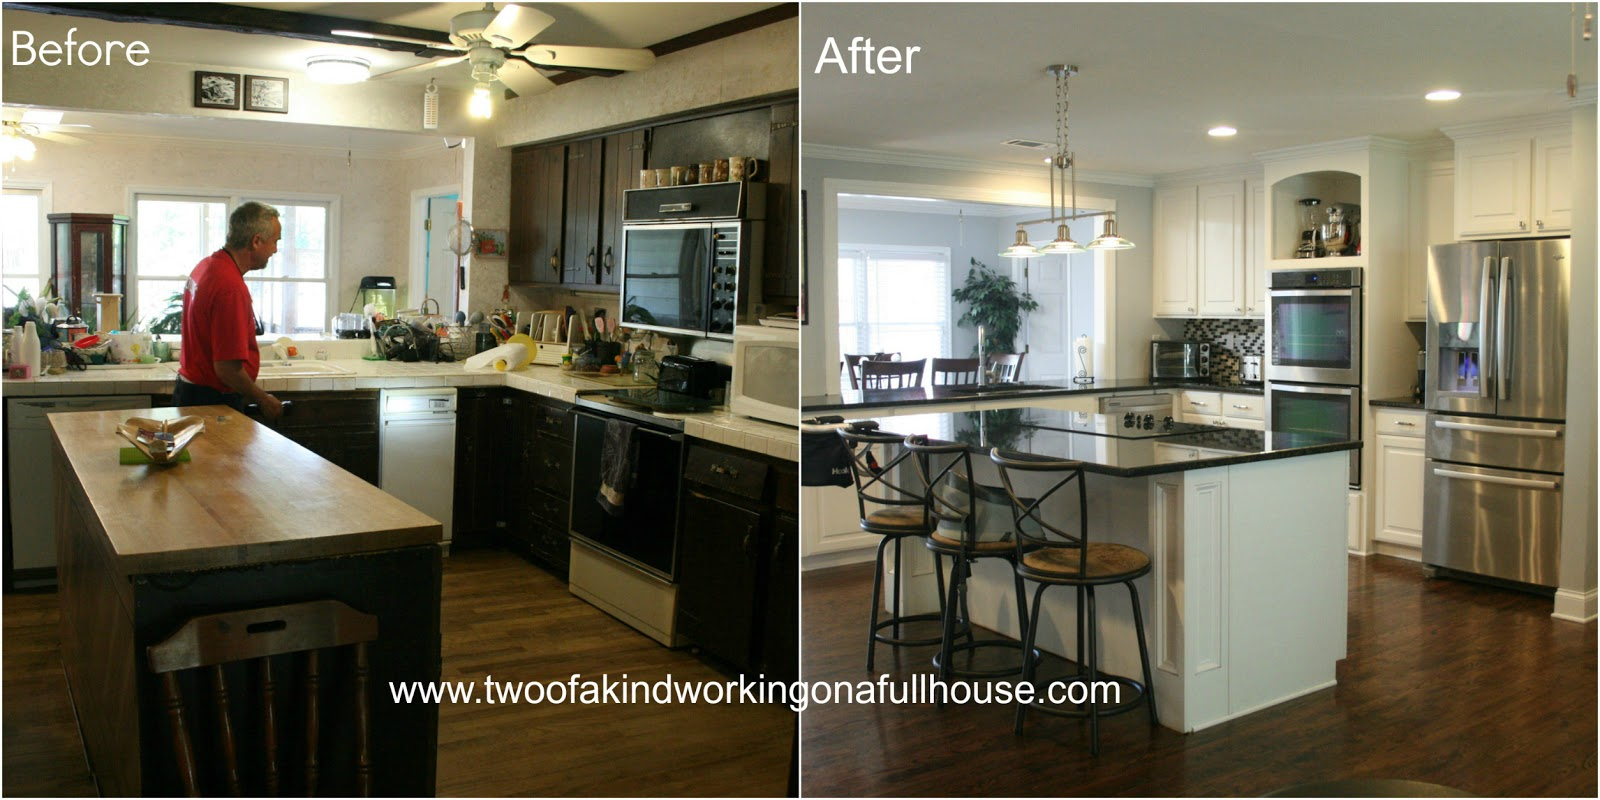 Wordless wednesday before after kitchen remodel pictures two of a kind working on a full house Home redesign